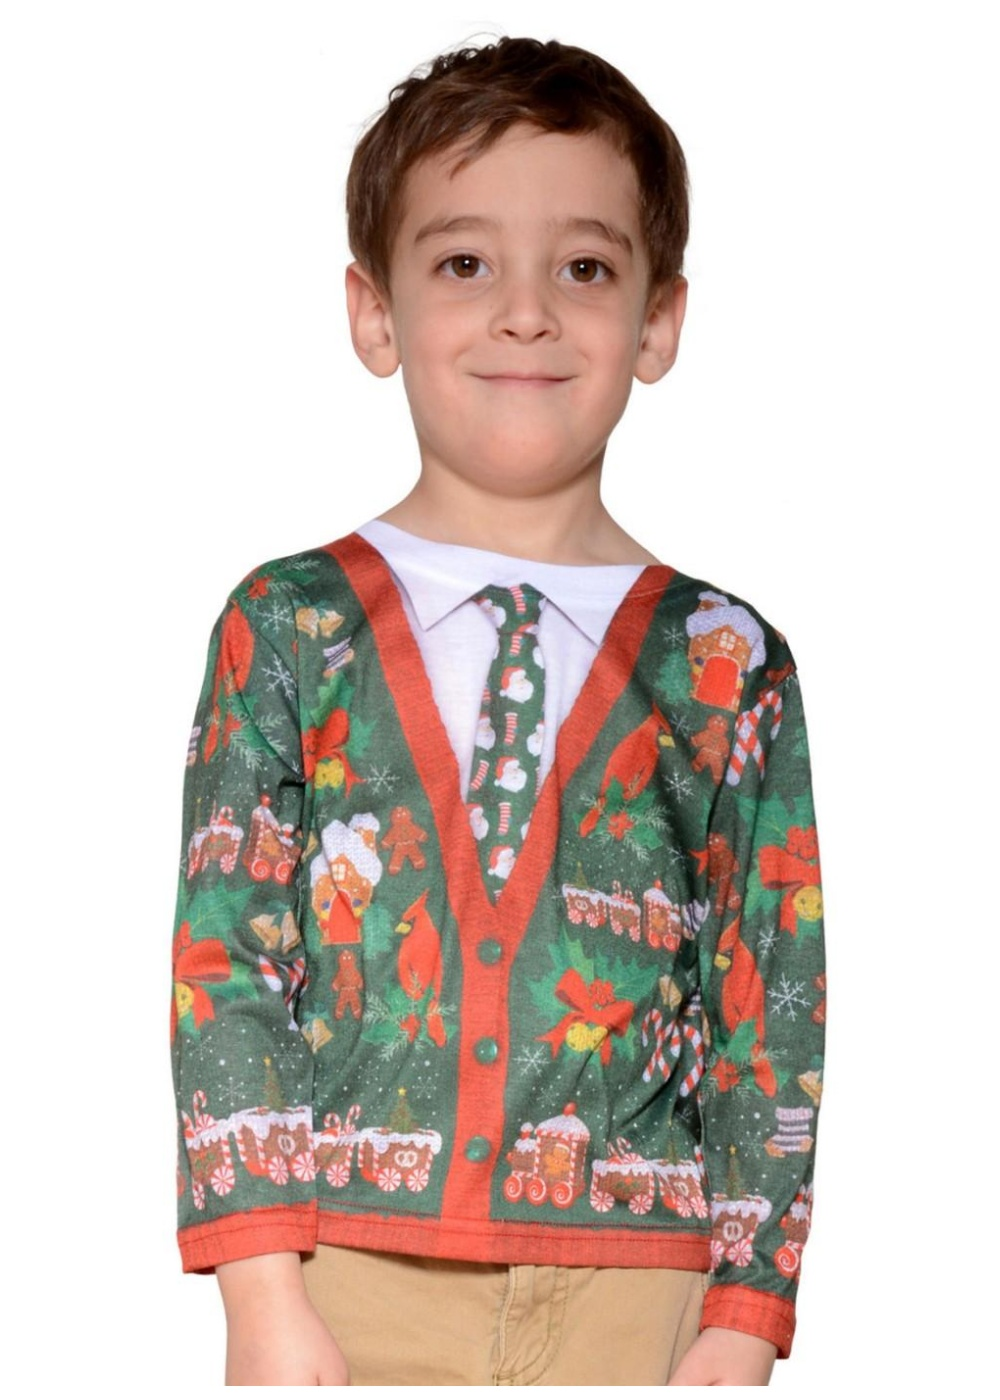 Kid-s Ugly Christmas Cardigan Sweater - Christmas Costumes